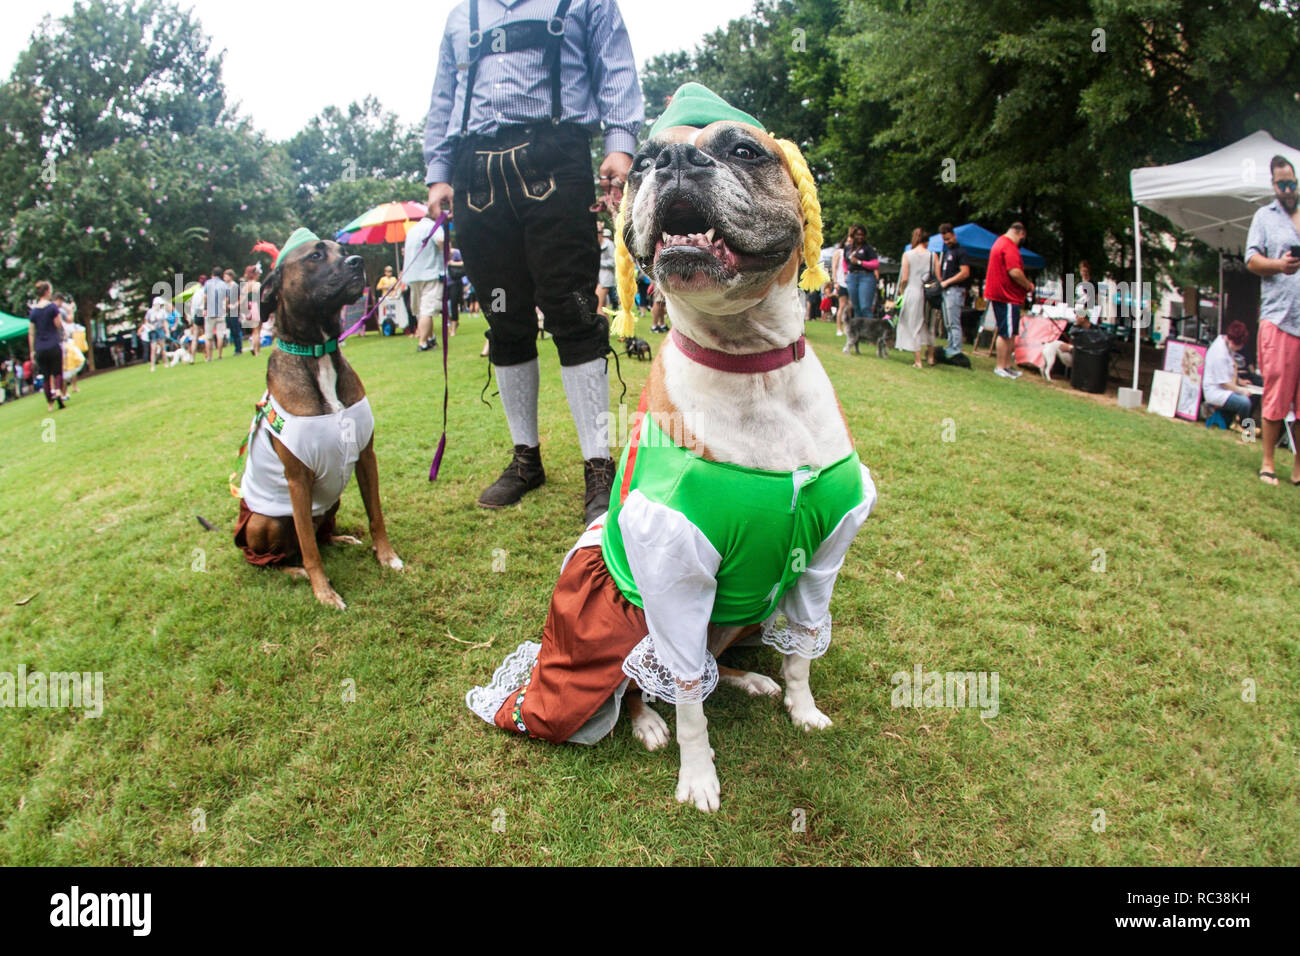 Two dogs wear bavarian costumes as their owner wears lederhosen, at Doggy Con, a dog costume contest in Woodruff Park on August 18, 2018 in Atlanta. - Stock Image